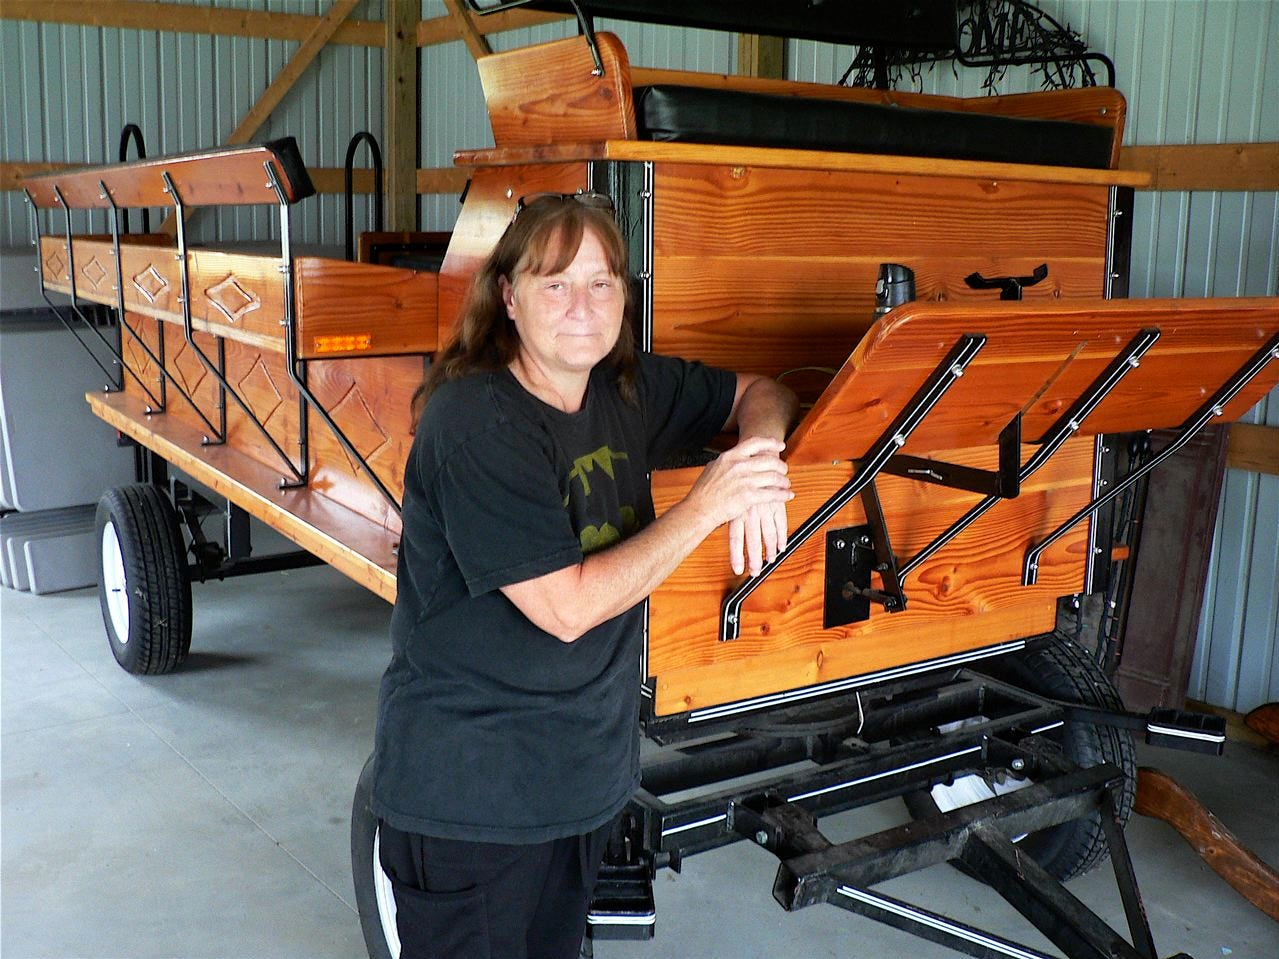 Diane Mayr and her new horse-powered wagon used for rides.